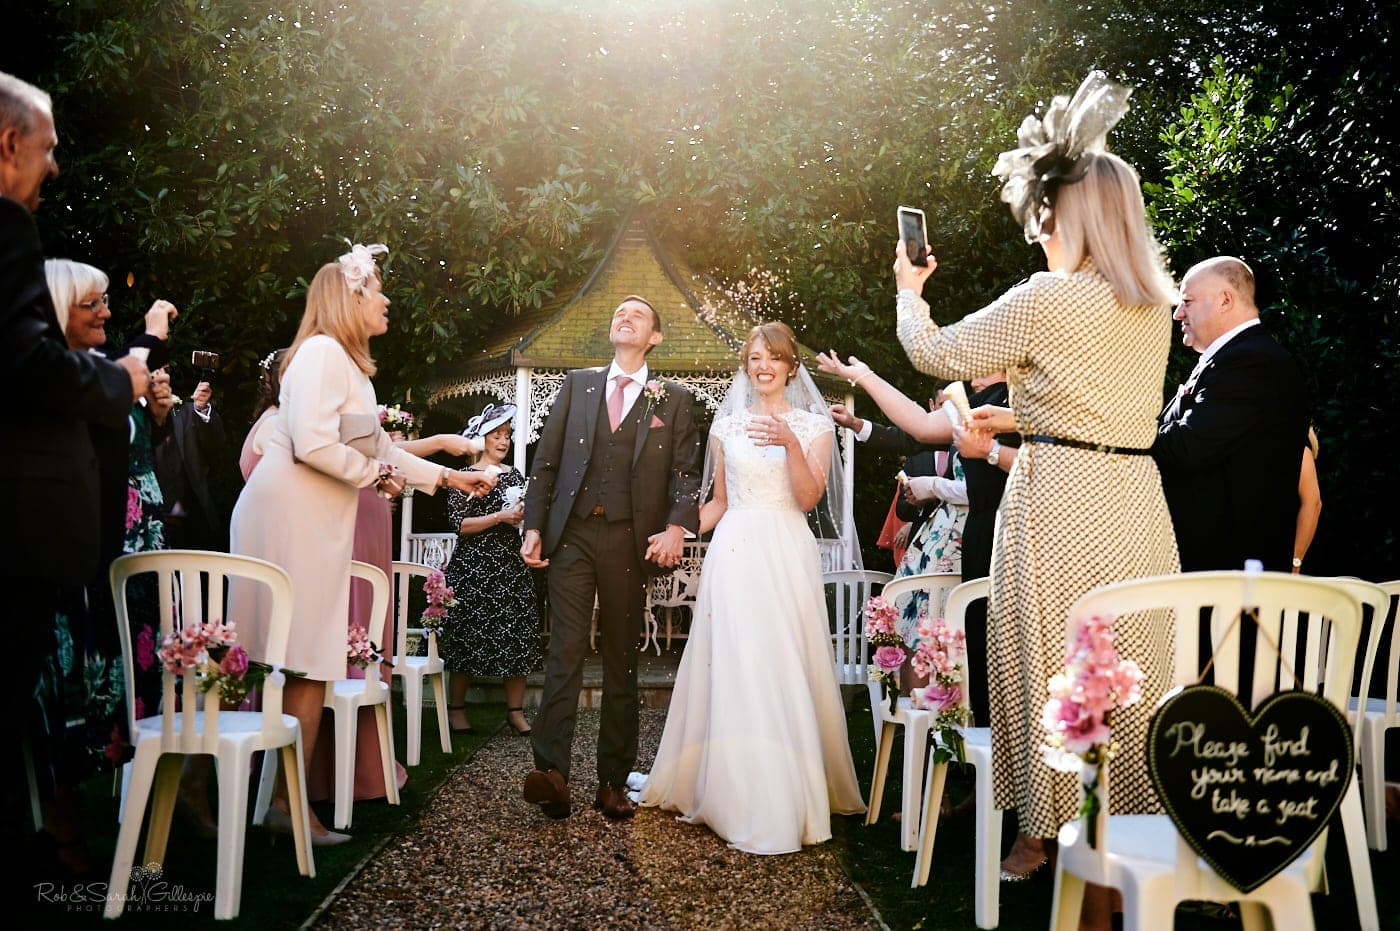 Bride and groom walking up aisle as wedding guests throw confetti